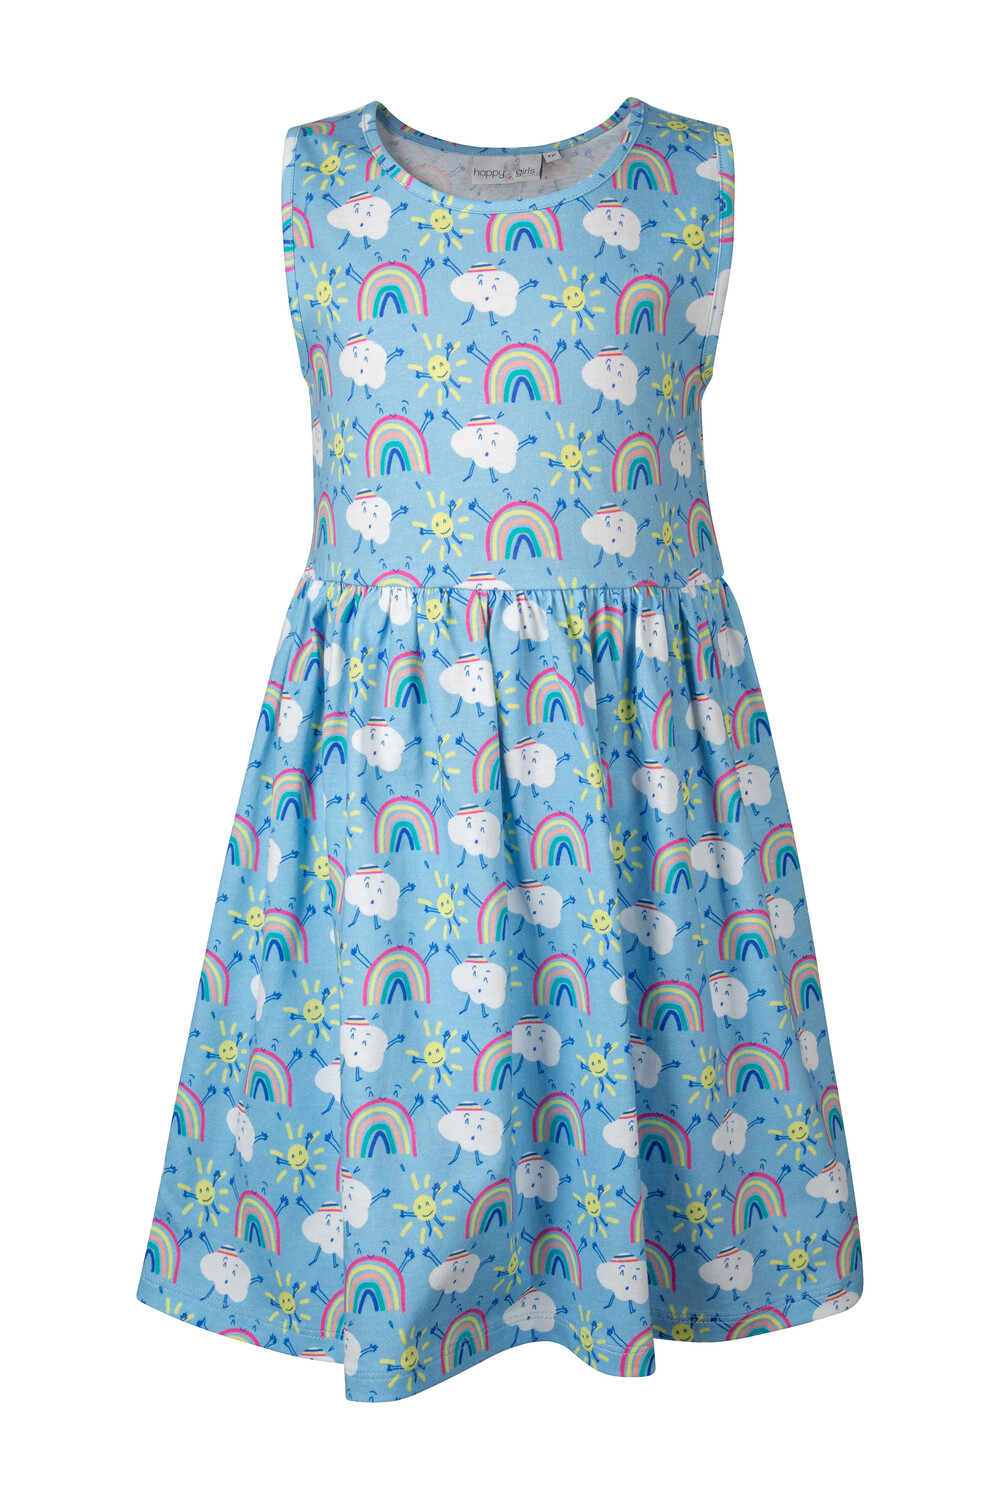 Kleid 92 arctic blue happy girls by Eisend